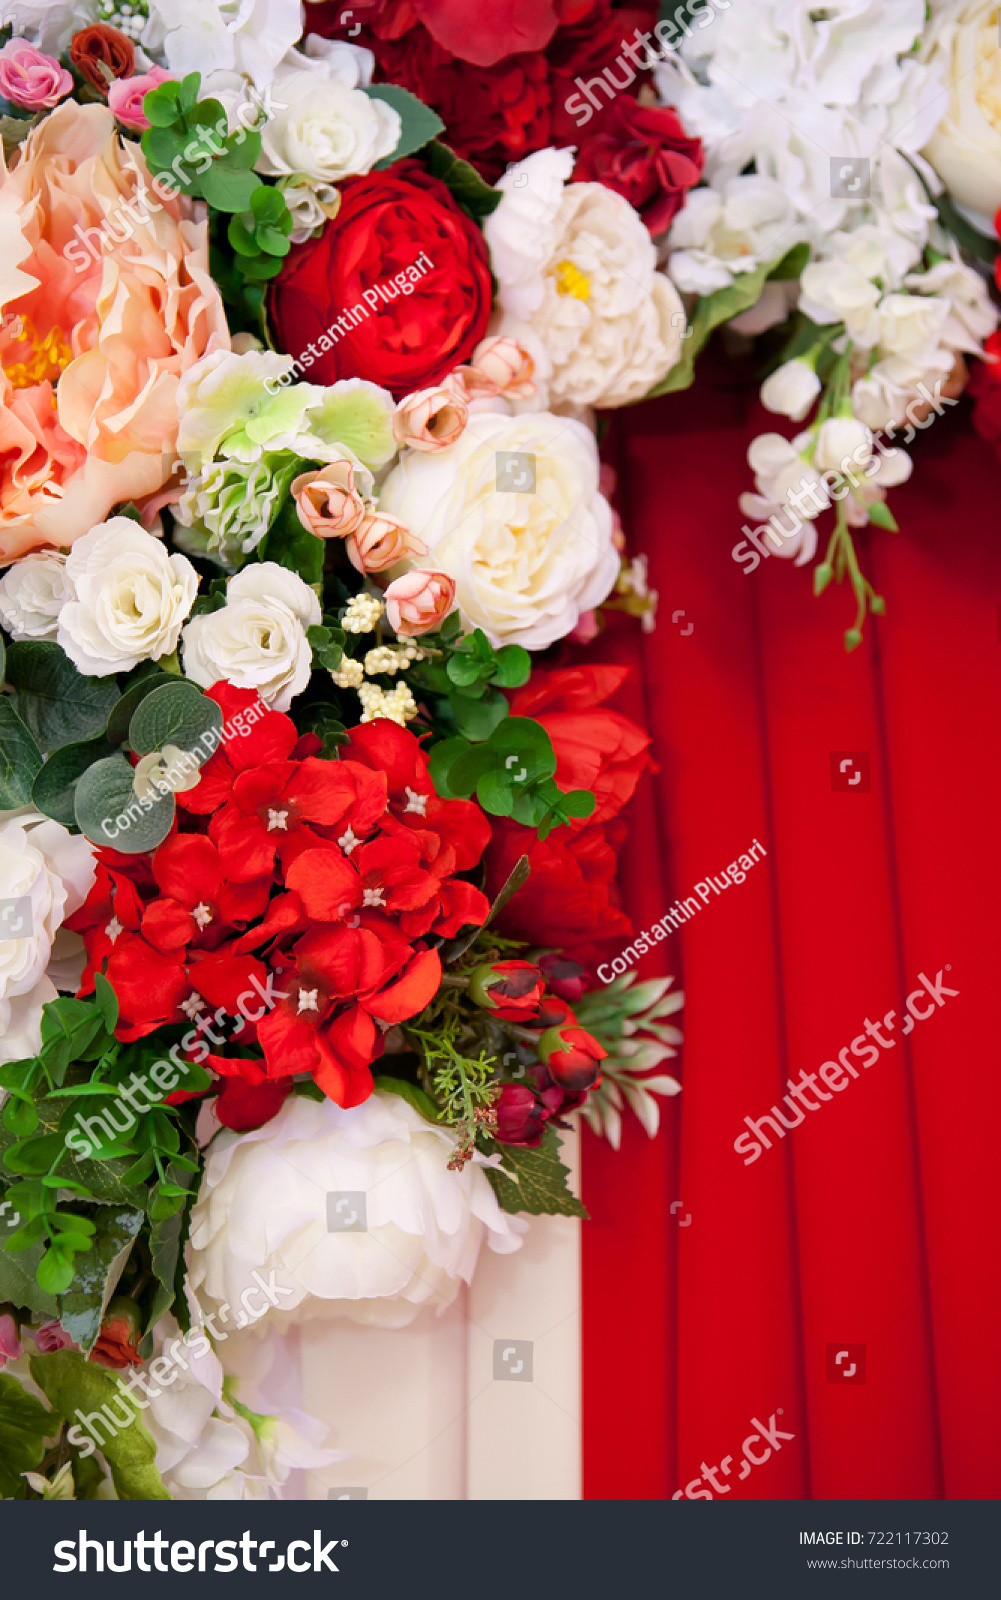 Decorations Flowers Colors Red White Pink Stock Photo 722117302 ...